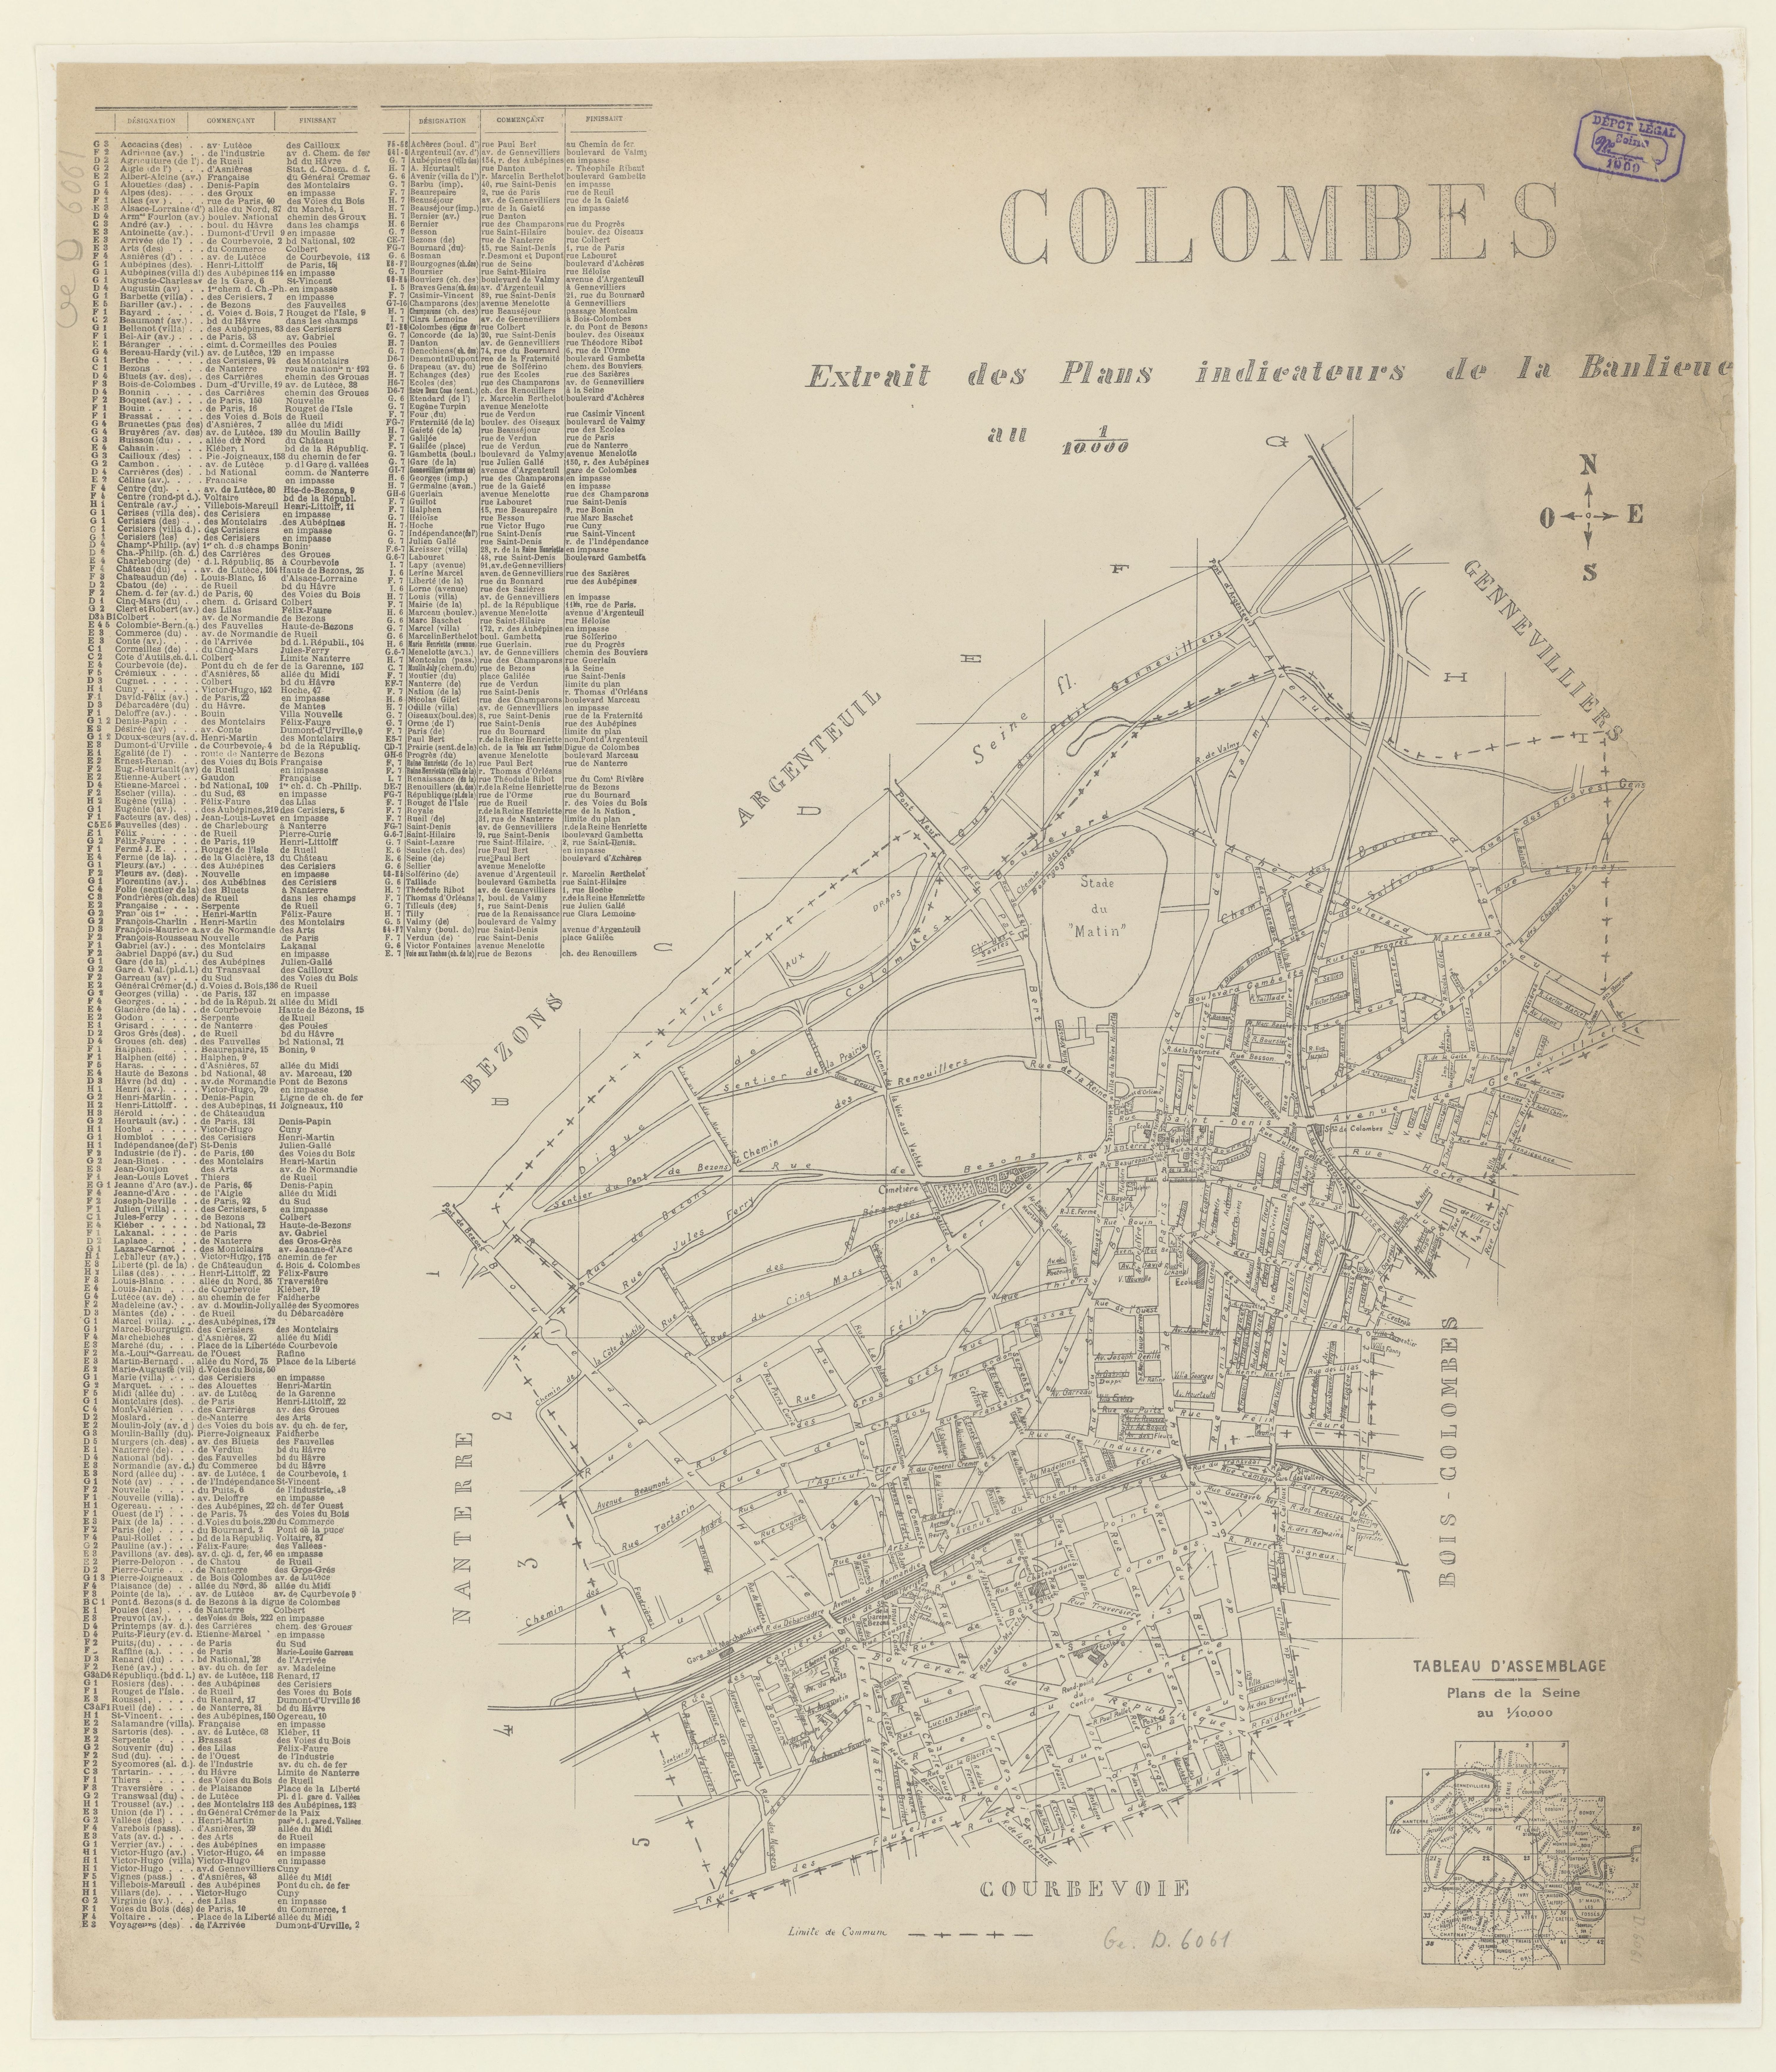 Plan de Colombes en 1909